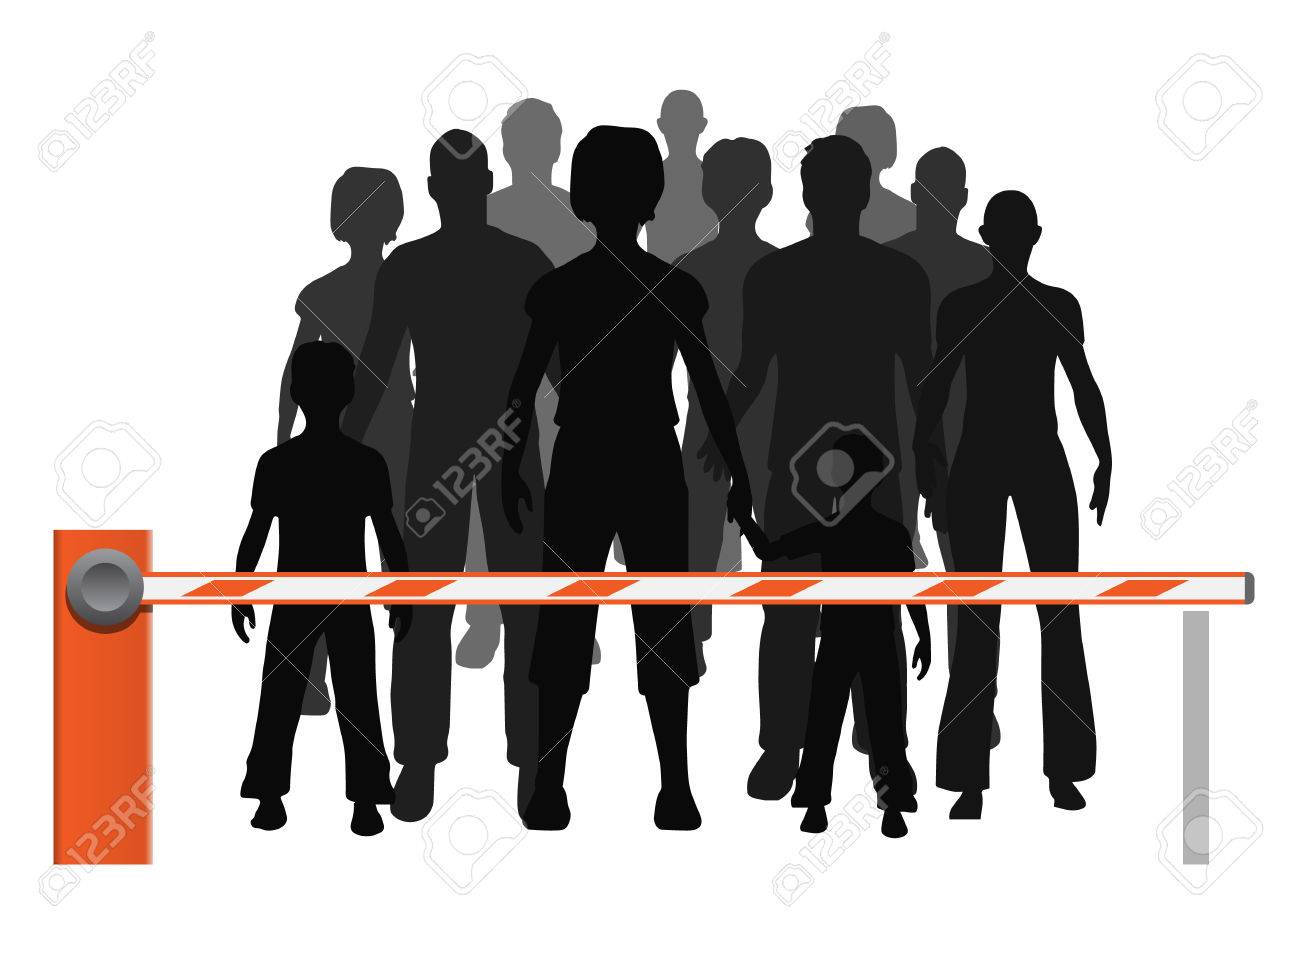 Men, women and children refugees are behind the barrier. Vector illustration about probleme refugees which are not allowed. Stock Vector - 45704112